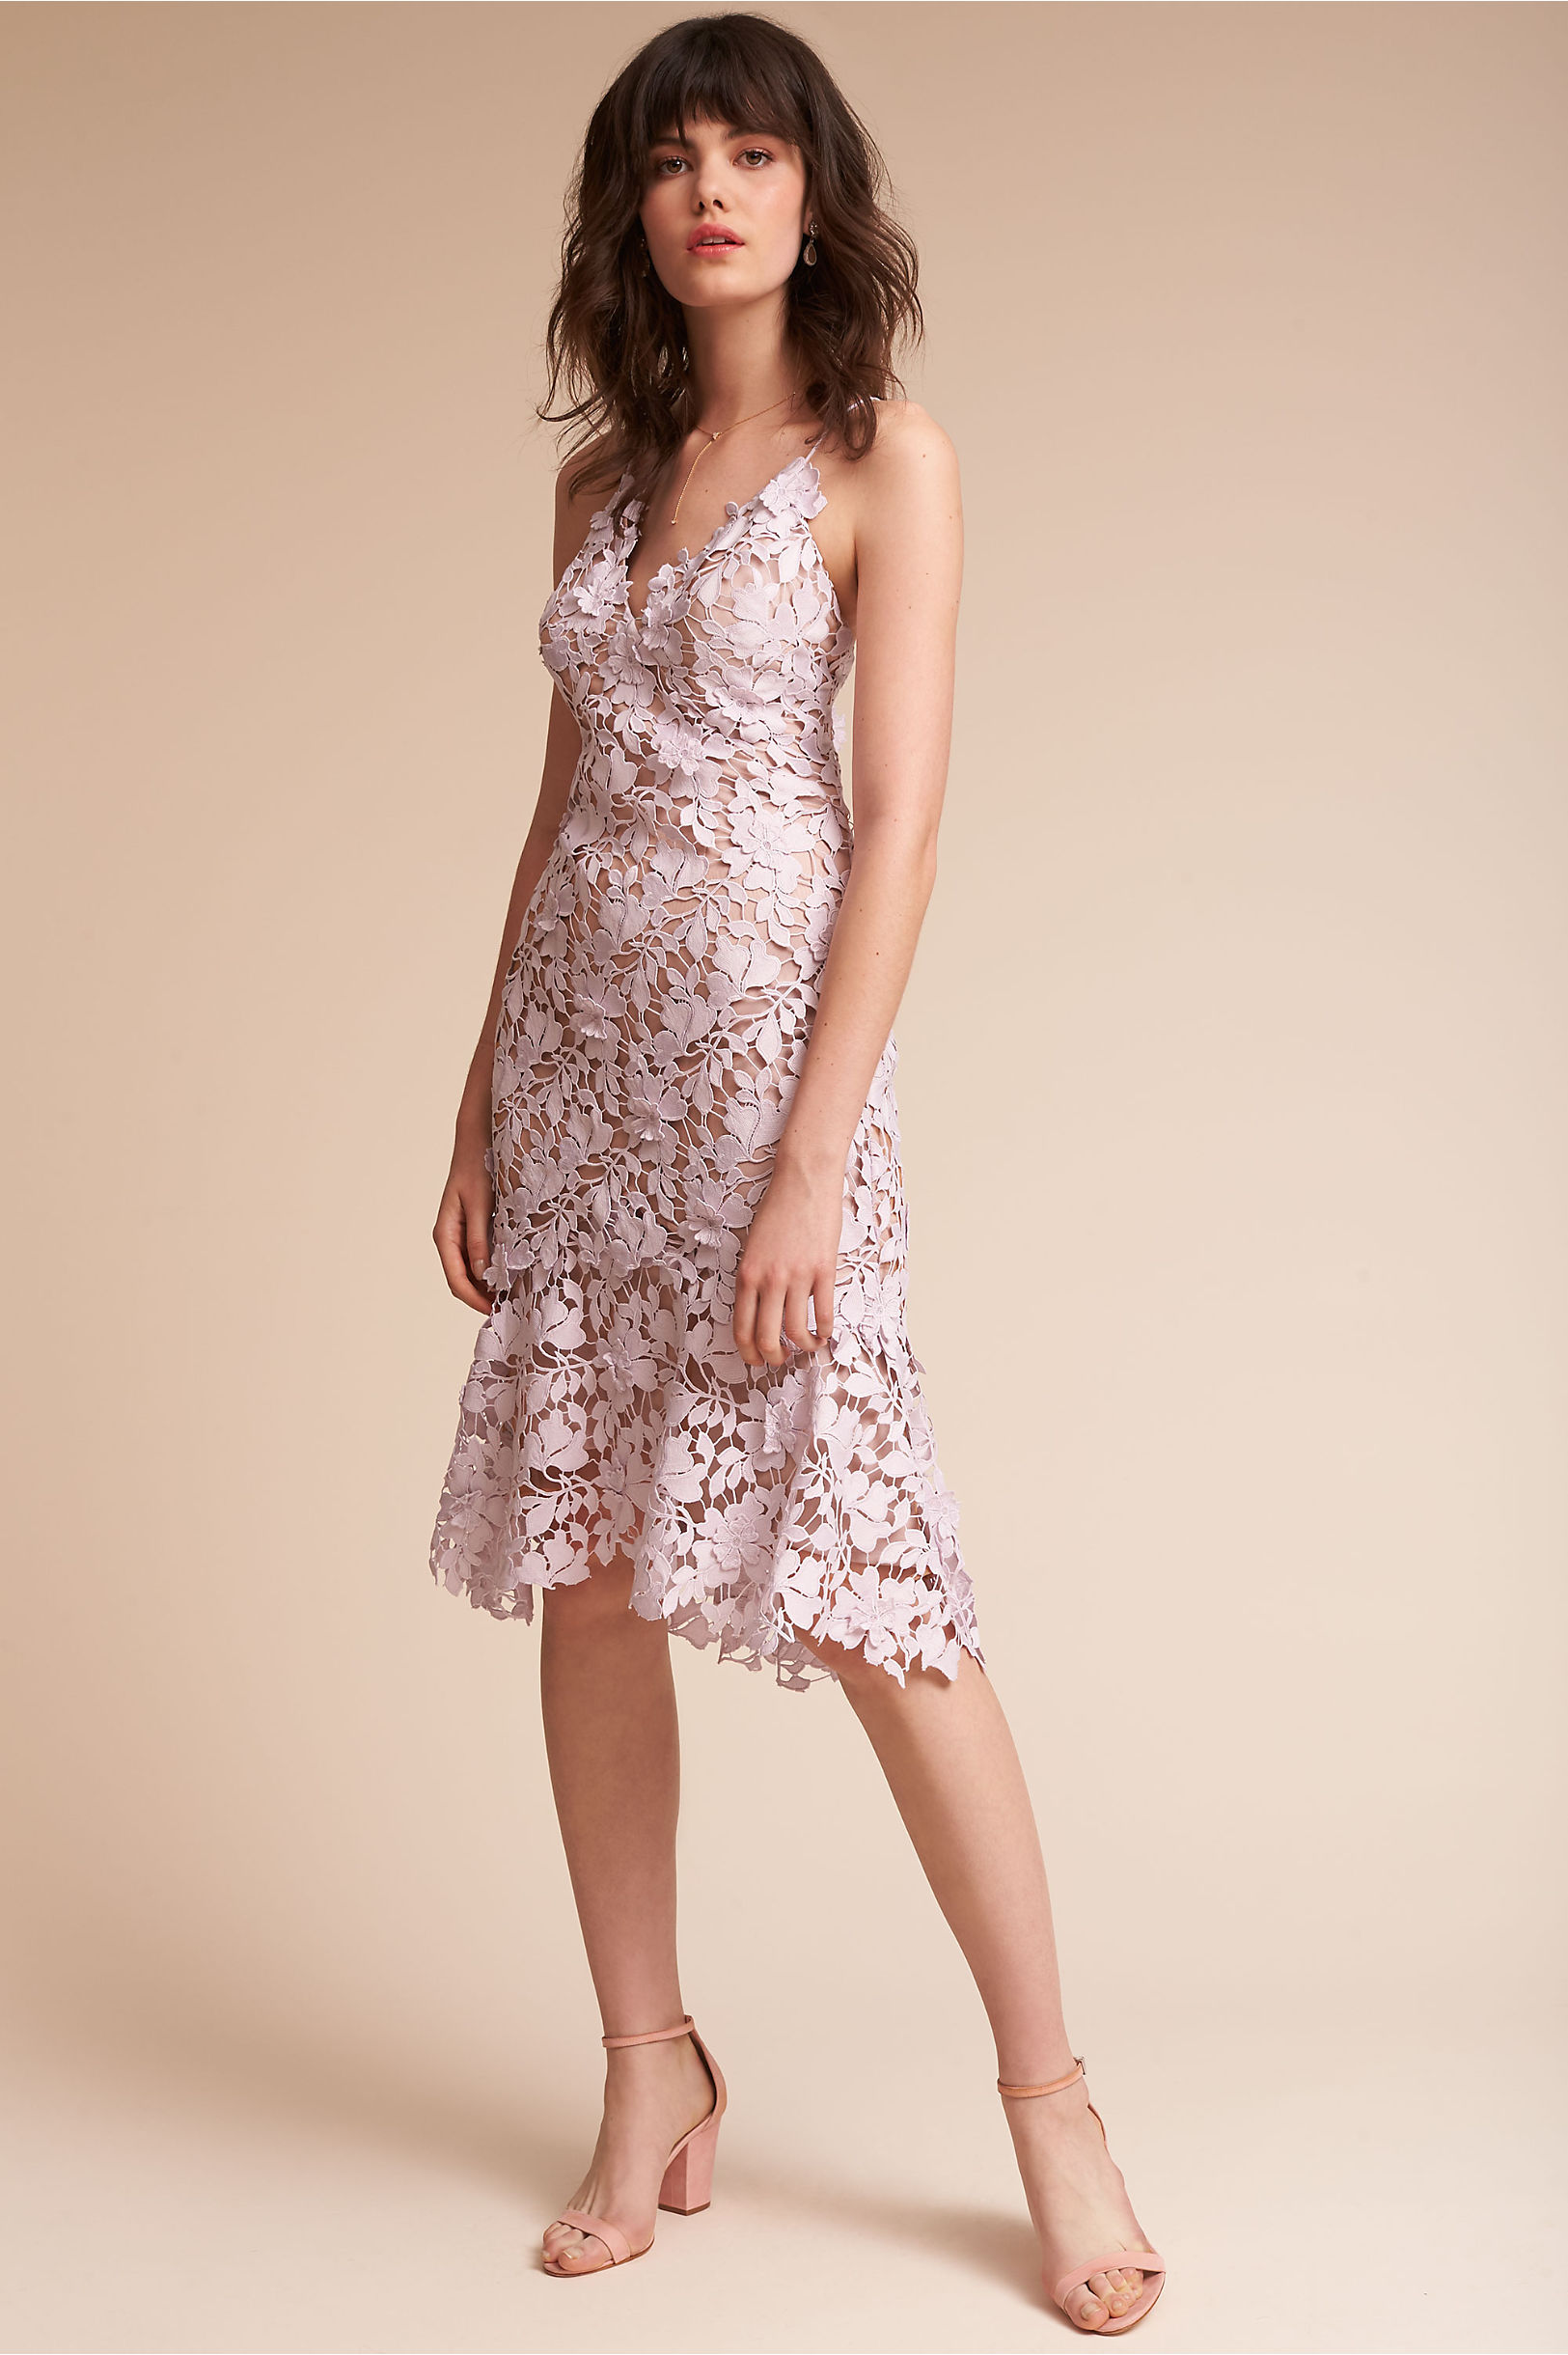 Marina Dress in Sale | BHLDN